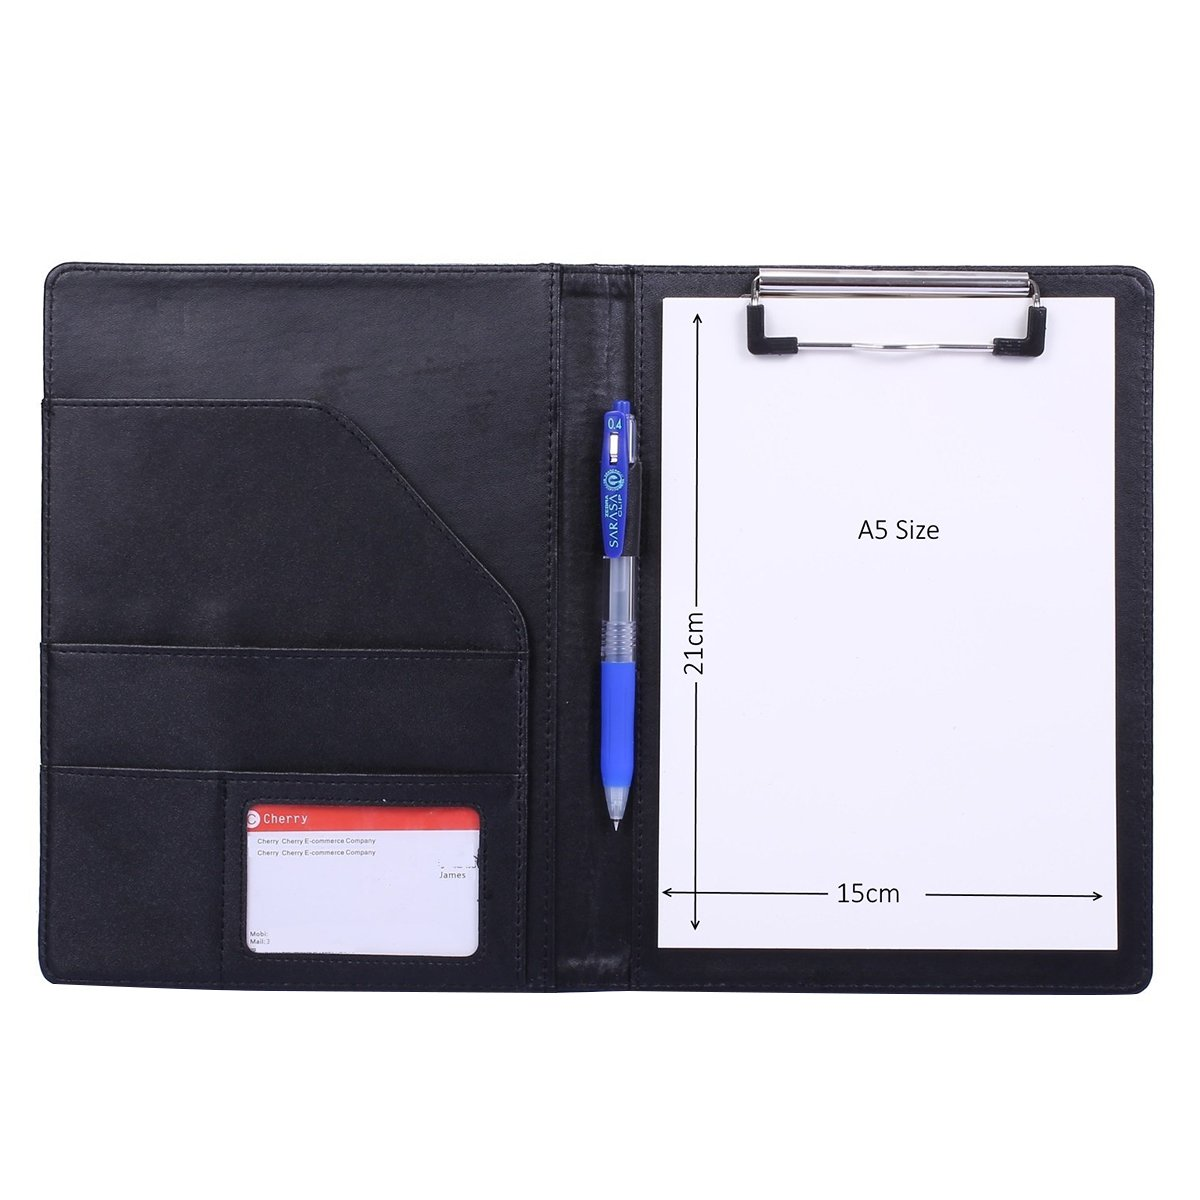 NUOLUX A5 PU Files Folder with Inside Storage Pocket for Files Organization(Black)